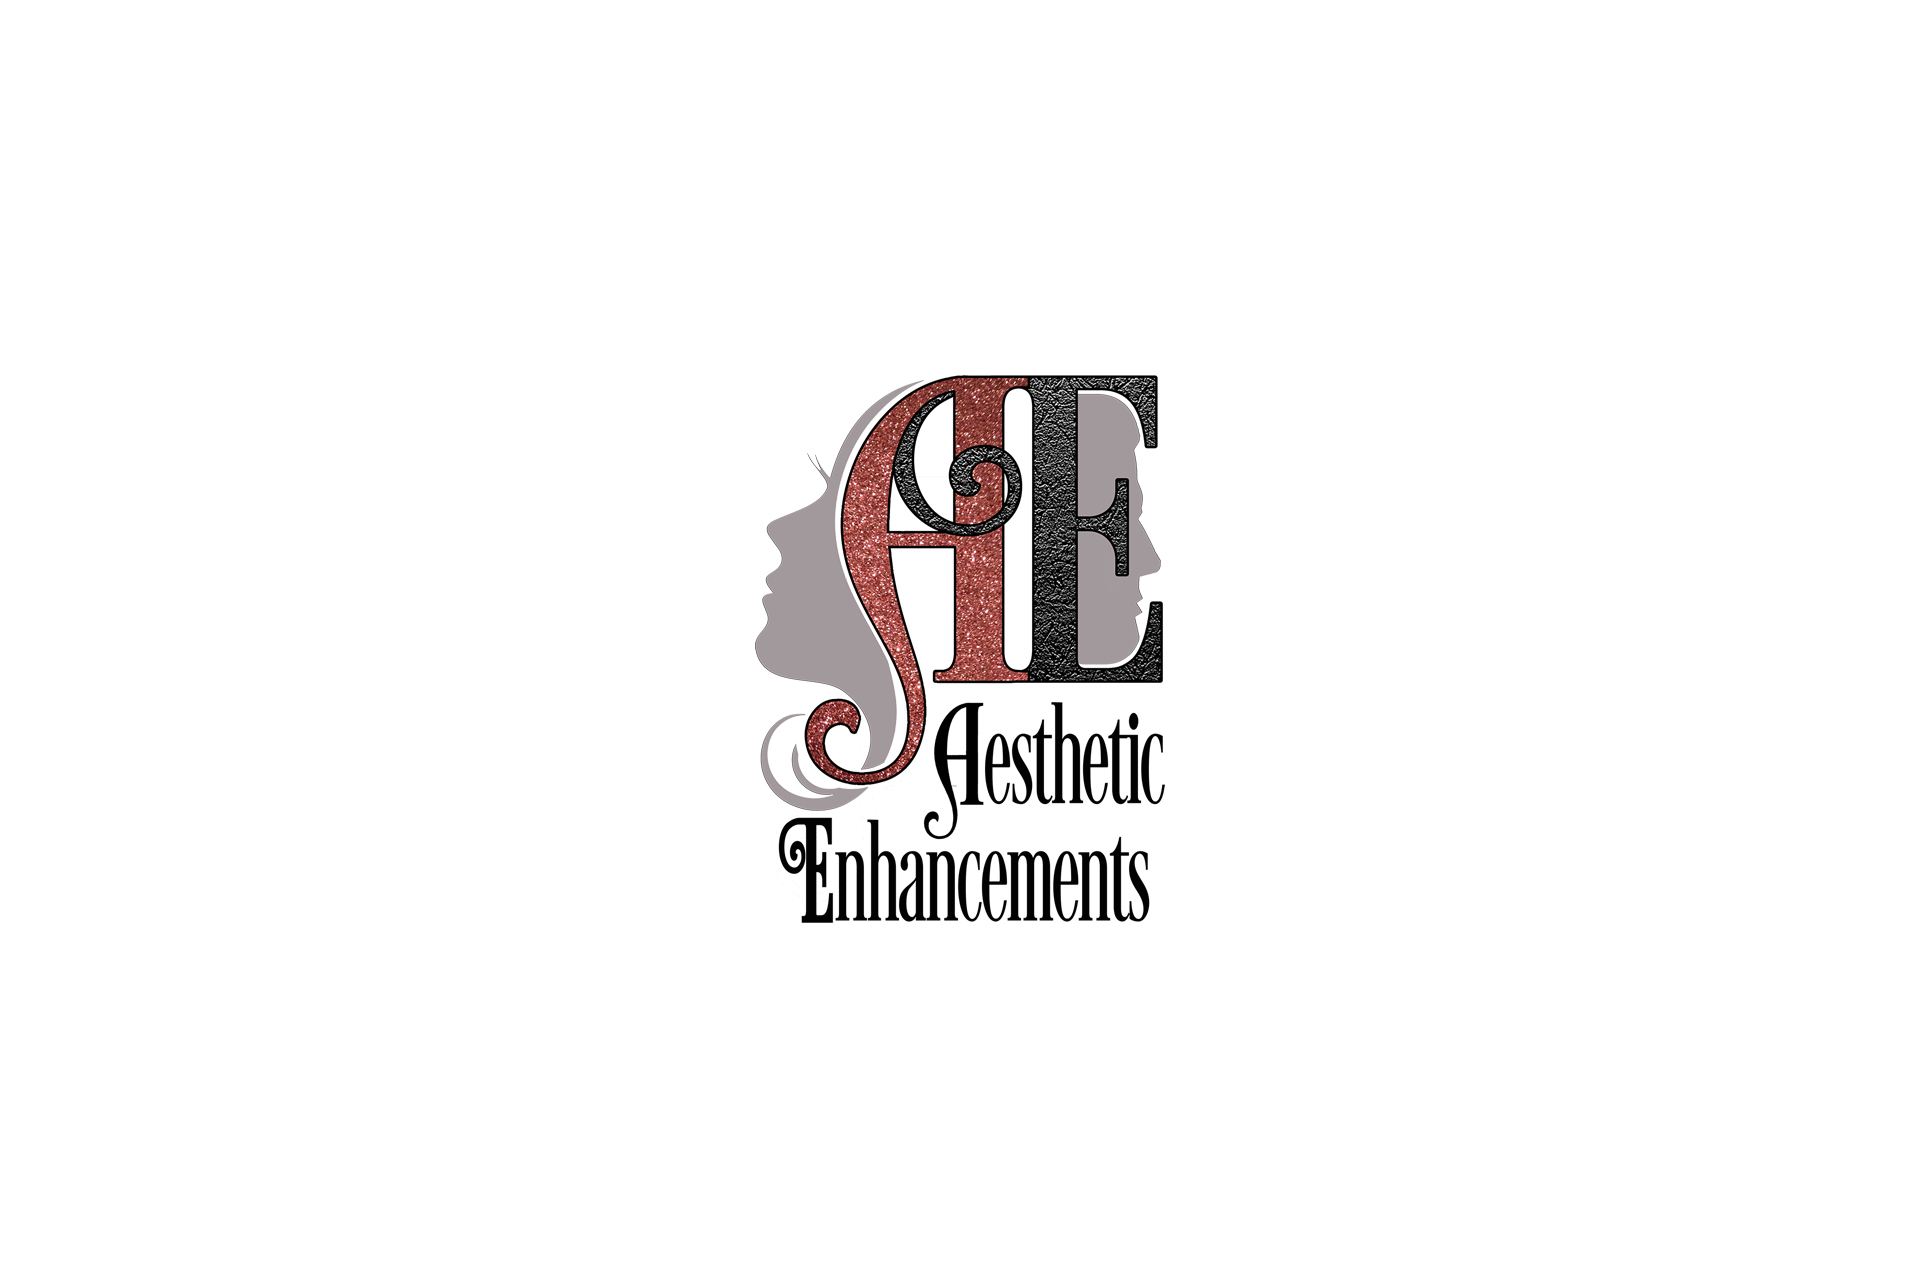 Aesthetic Enhancements logo